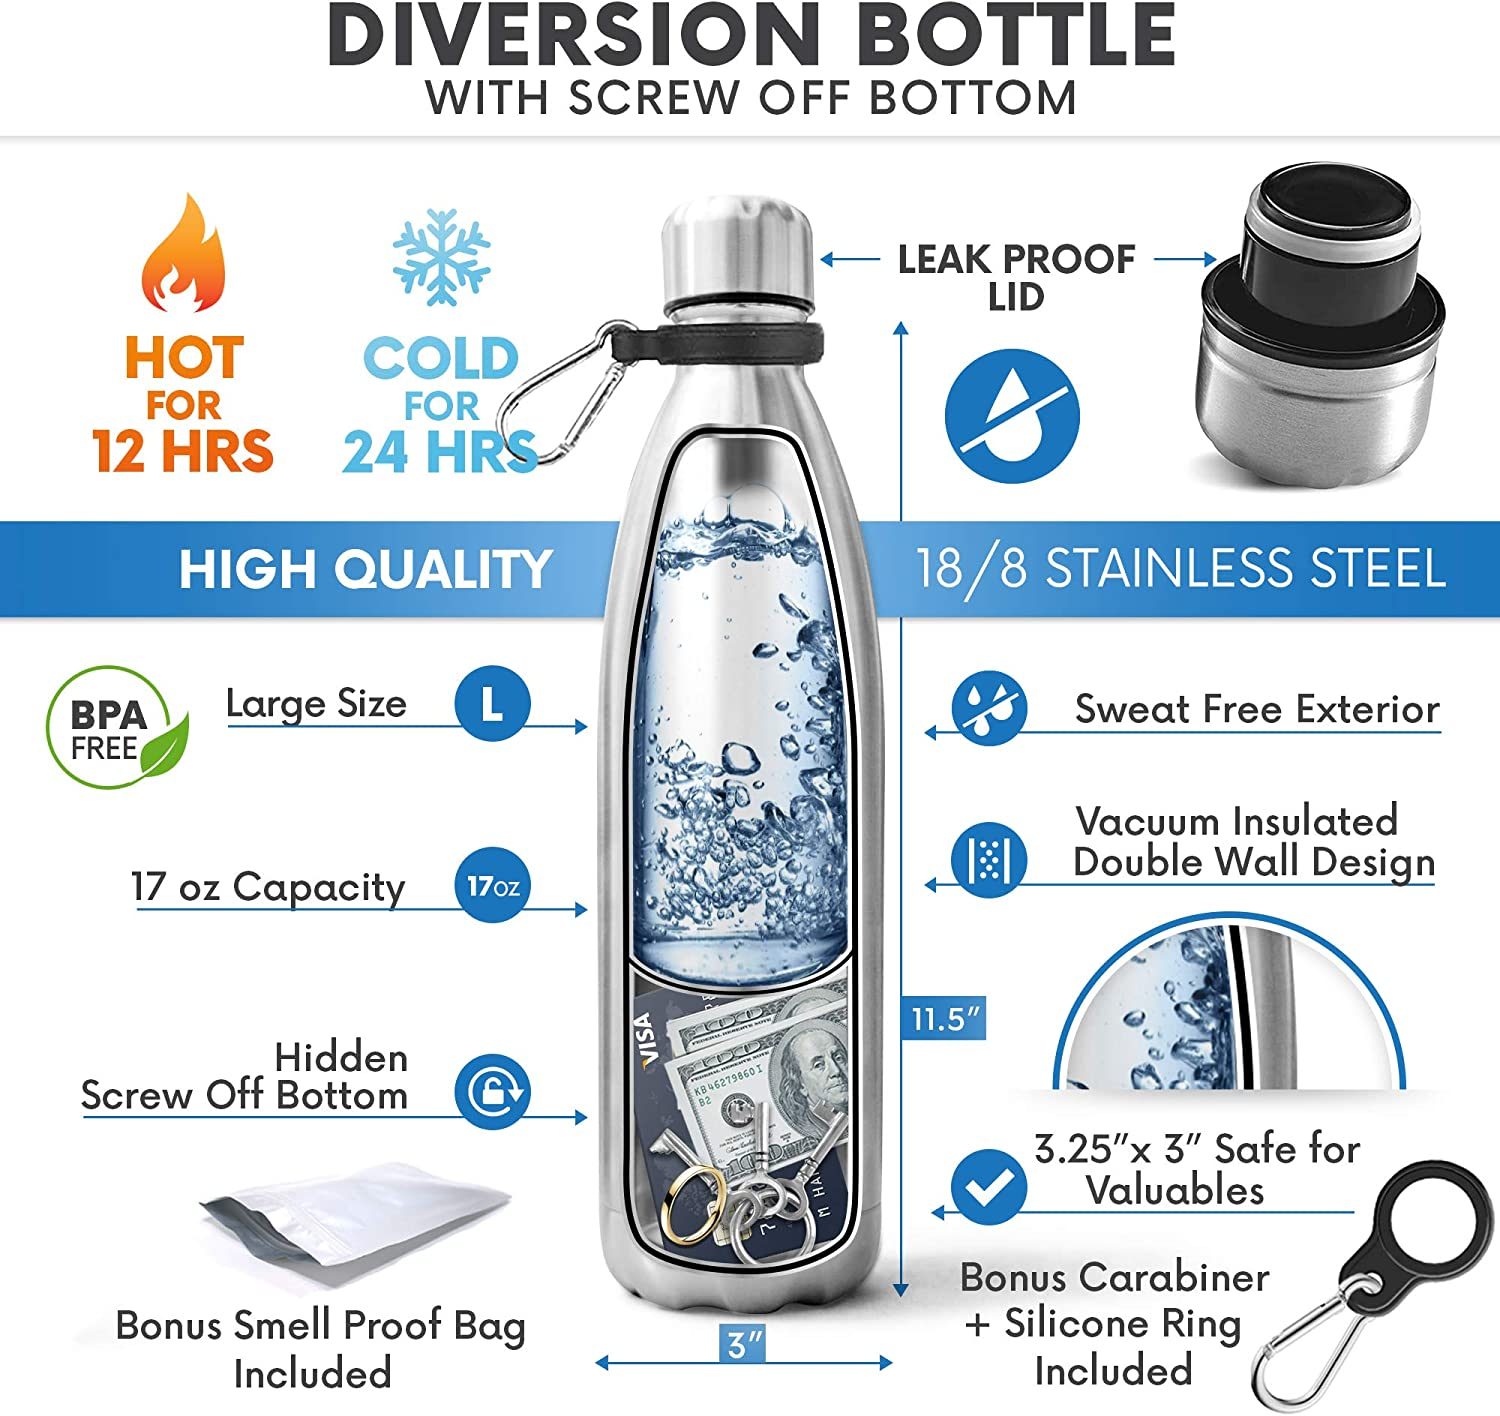 Stainless Steel Bottle Diversion Safe Store Small Valuables Dual Purpose Black